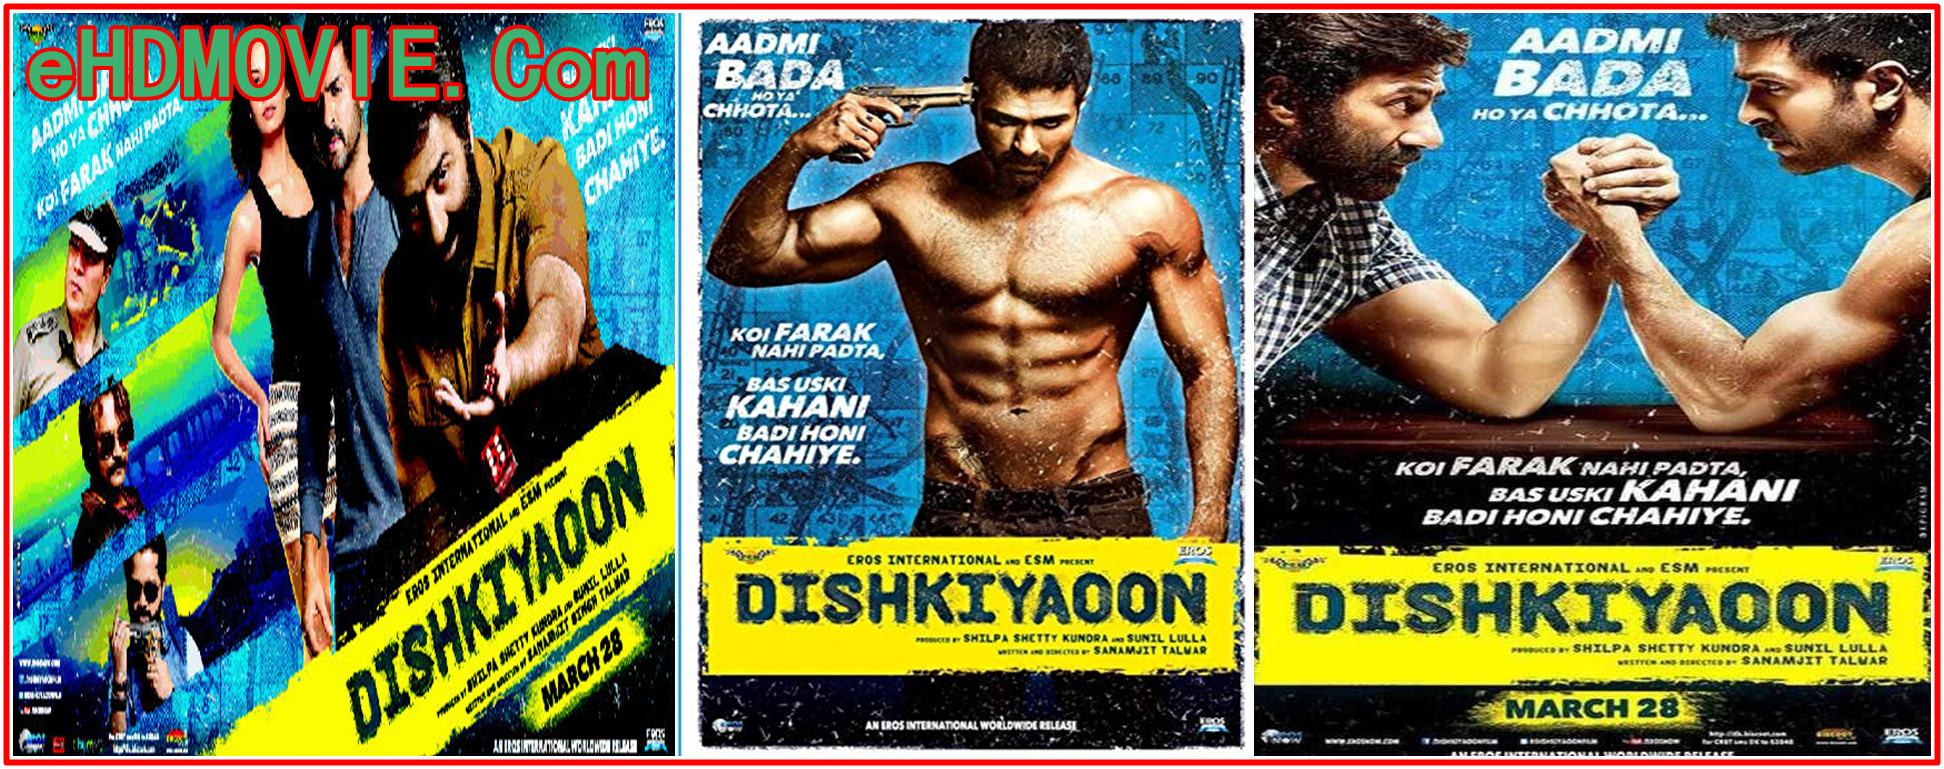 Dishkiyaoon 2014 Full Movie Hindi 720p – 480p ORG BRRip 400MB – 850MB ESubs Free DownloadDishkiyaoon 2014 Full Movie Hindi 720p – 480p ORG BRRip 400MB – 850MB ESubs Free Download